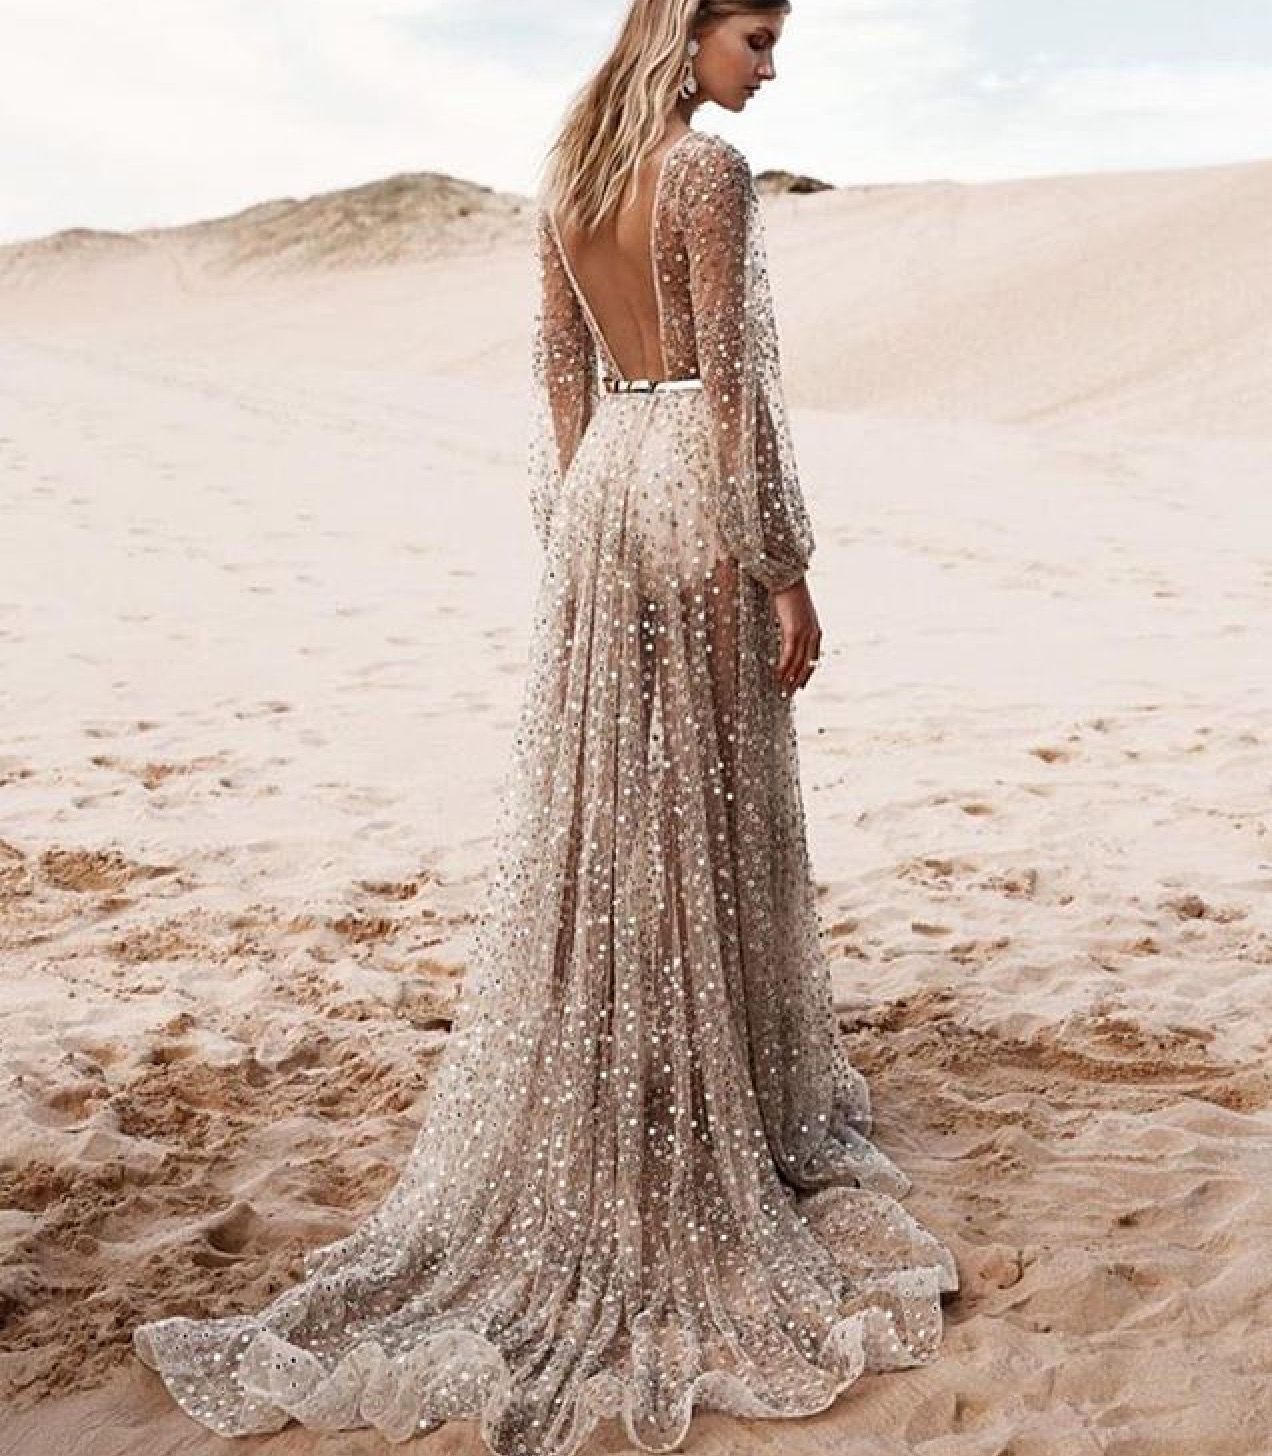 Wedding dresses for 2nd marriage  Pin by Cristina on Formal and Fancy  Pinterest  Formal and Fancy